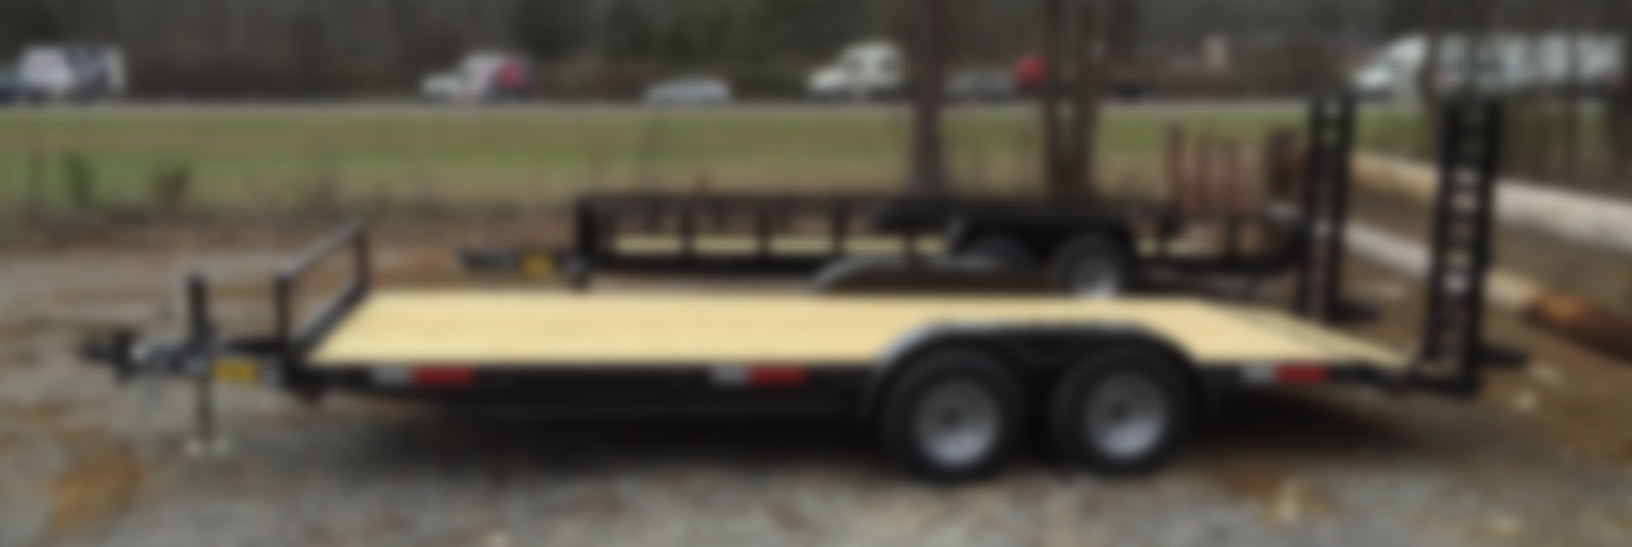 NEED A GOOD TRAILER? - We've got you covered.